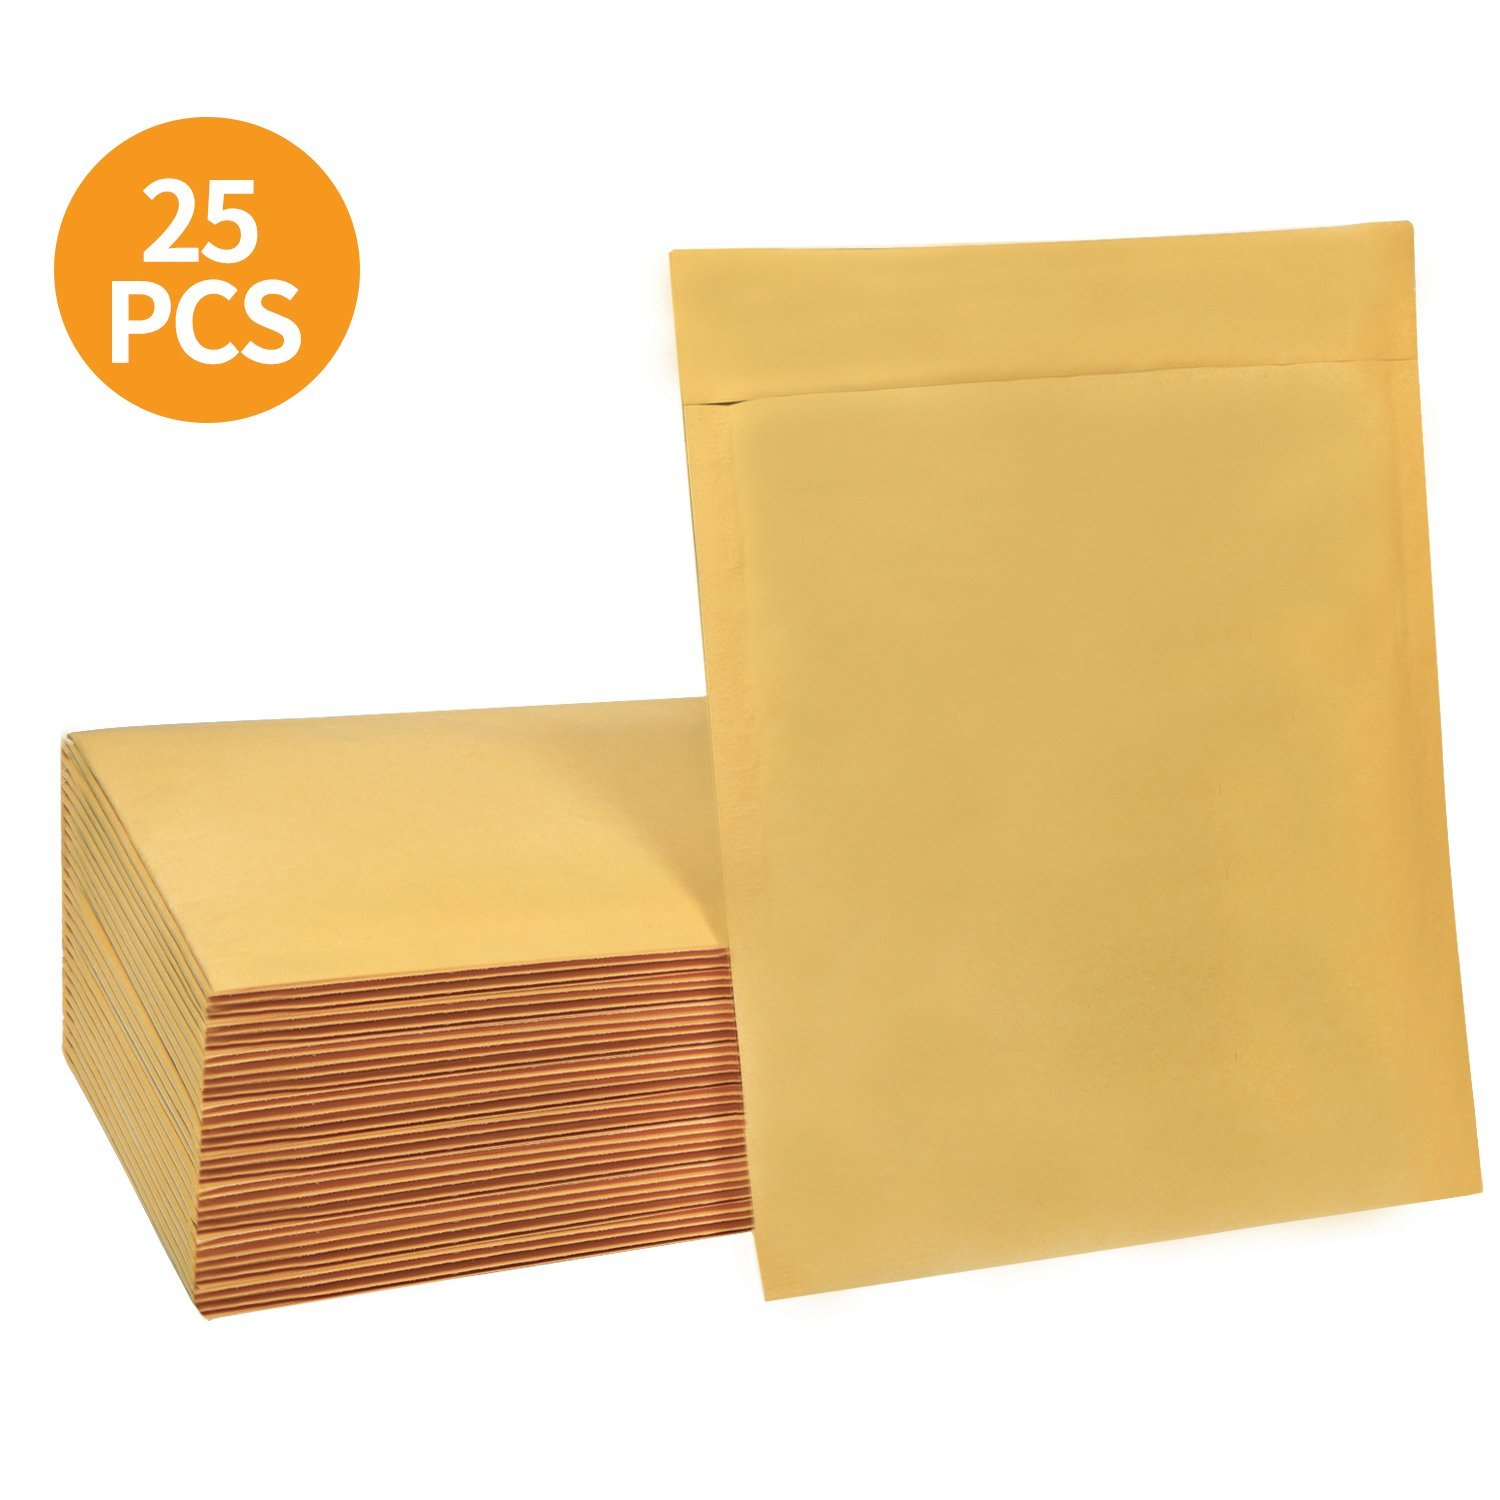 HBlife 8.5x12 inches Kraft Bubble Mailers Self Seal Padded Envelopes, Pack of 25